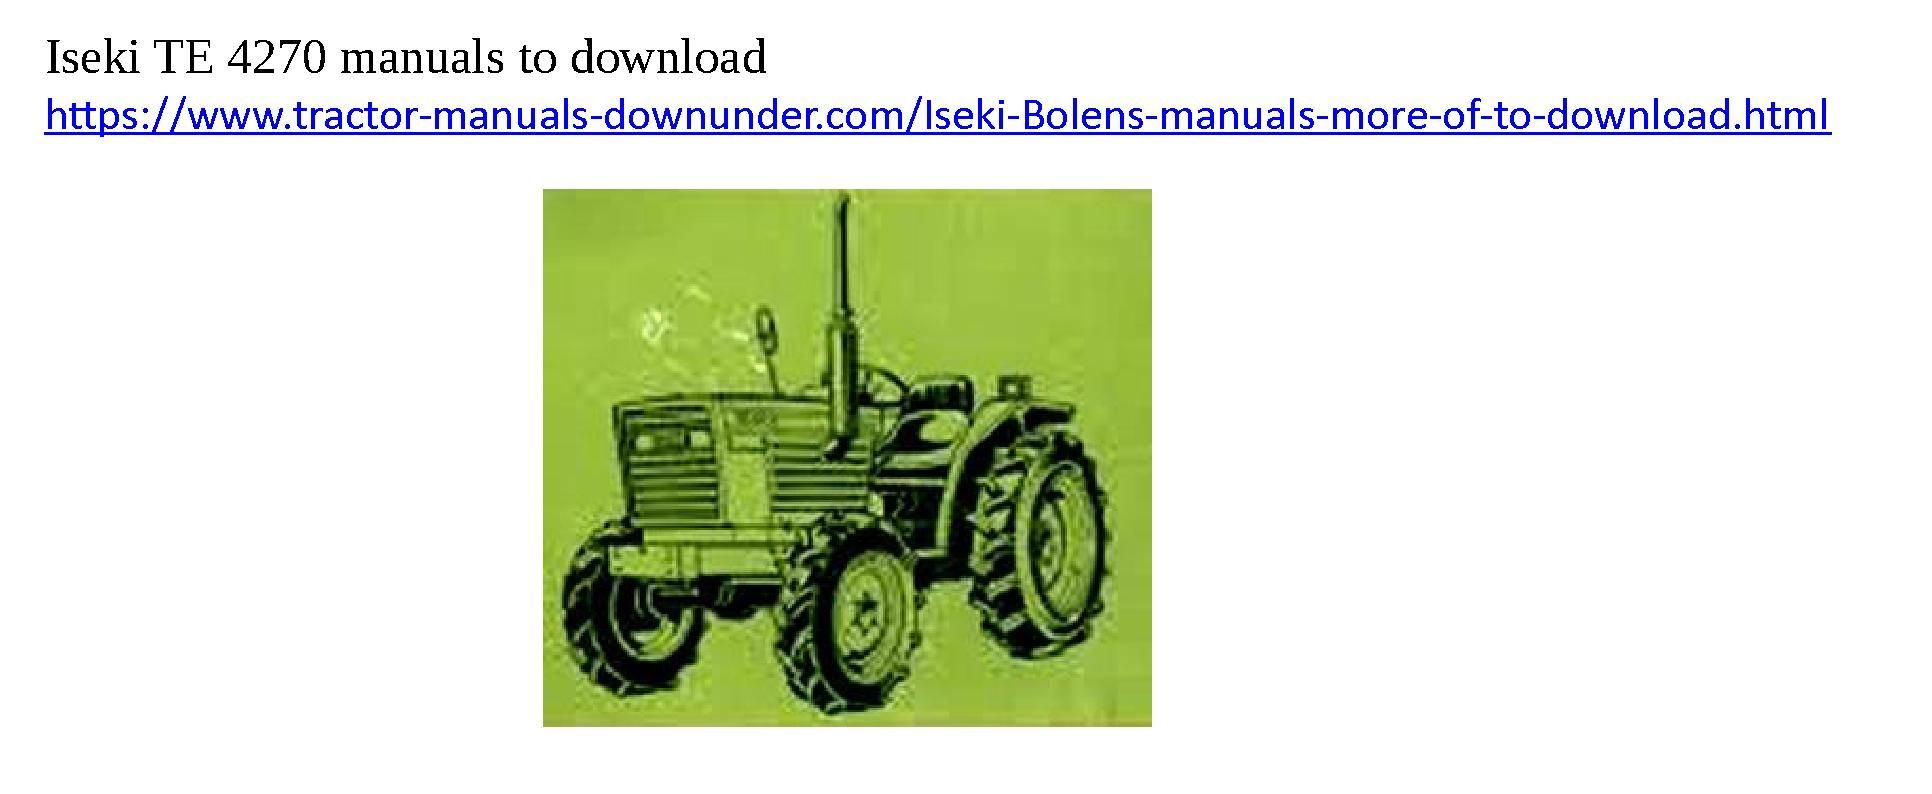 ... Array - download iseki tractor manuals here tractor manuals you can rh  pinterest com